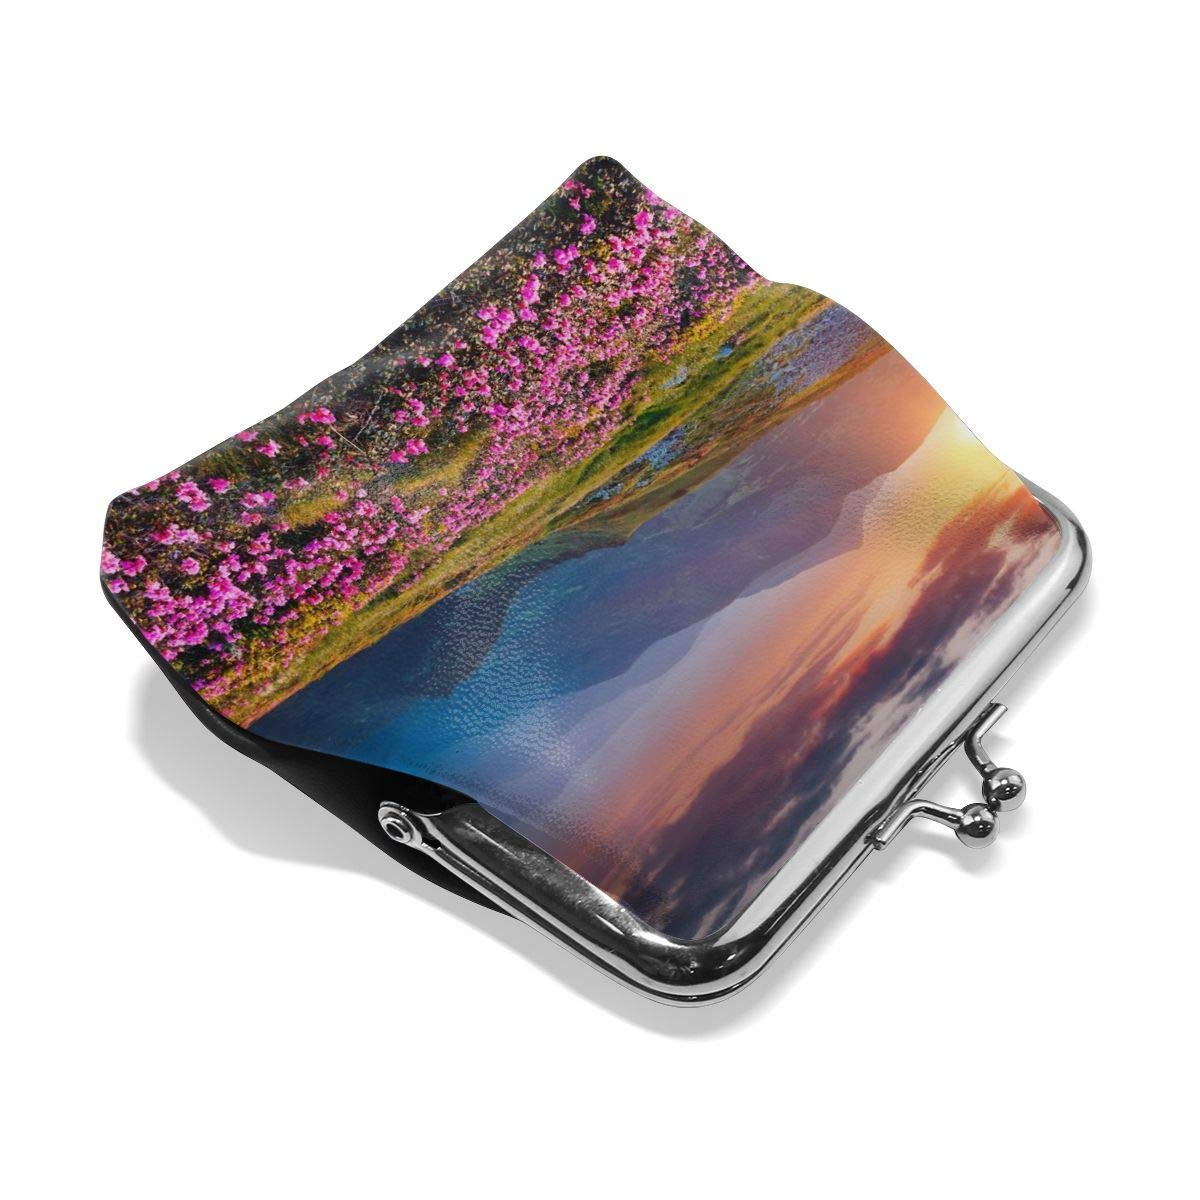 Architd Customized Cute Retro Coin Purse Personality Metal Lock Purse Girl Kiss And Buckle Change Purse Ladys HandbagRhododendron Blossoms In Carpathian Ukraine